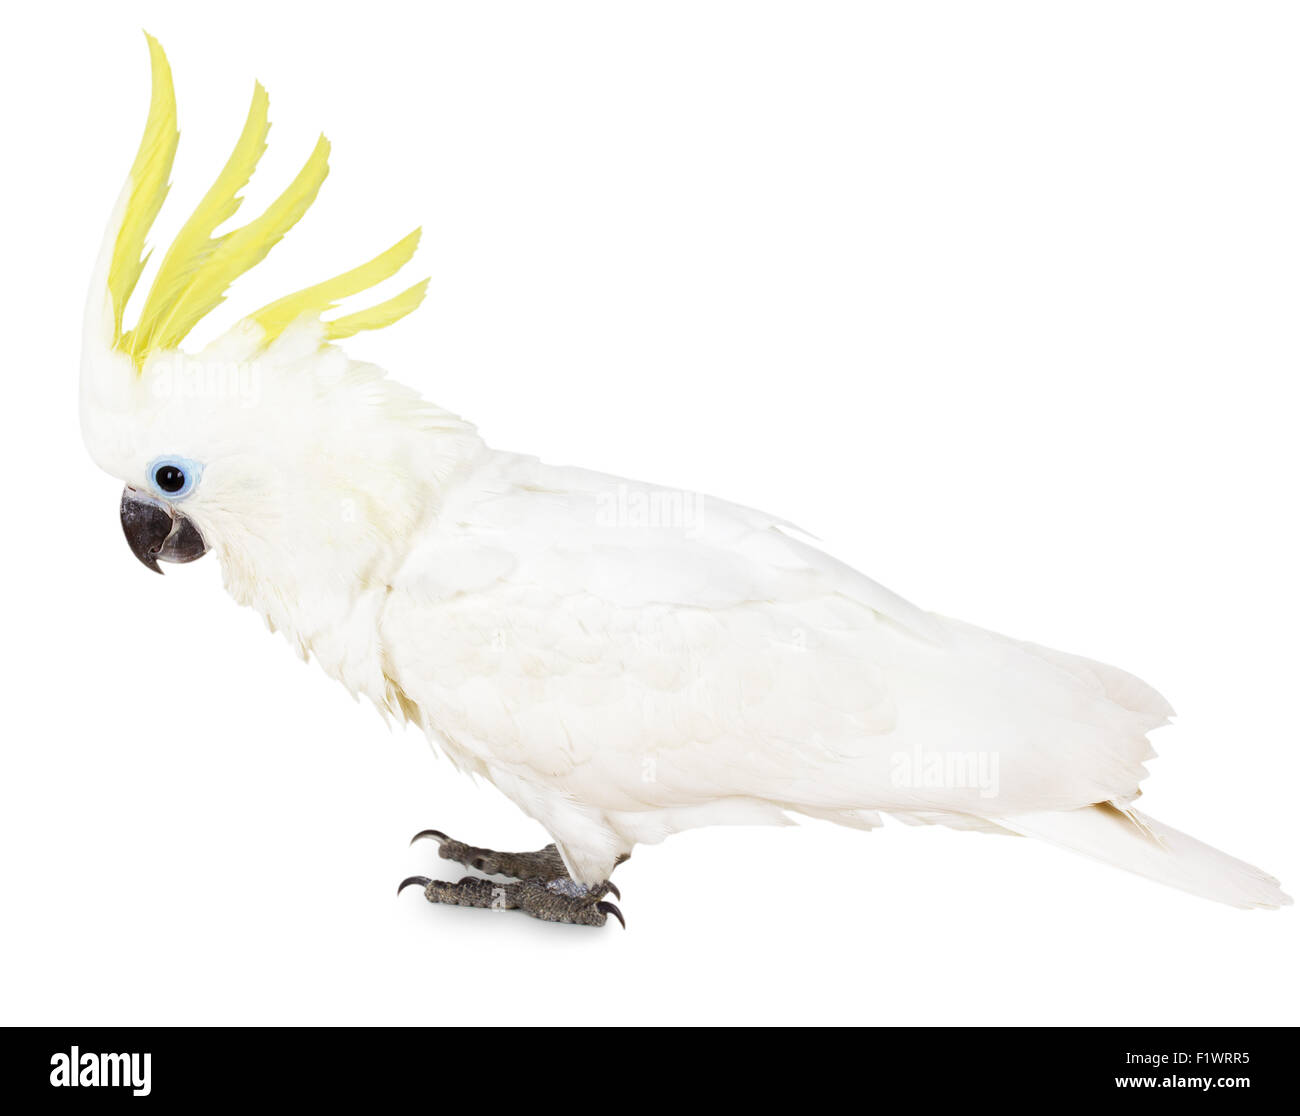 Sulphur-crested Cockatoo on the white background. - Stock Image